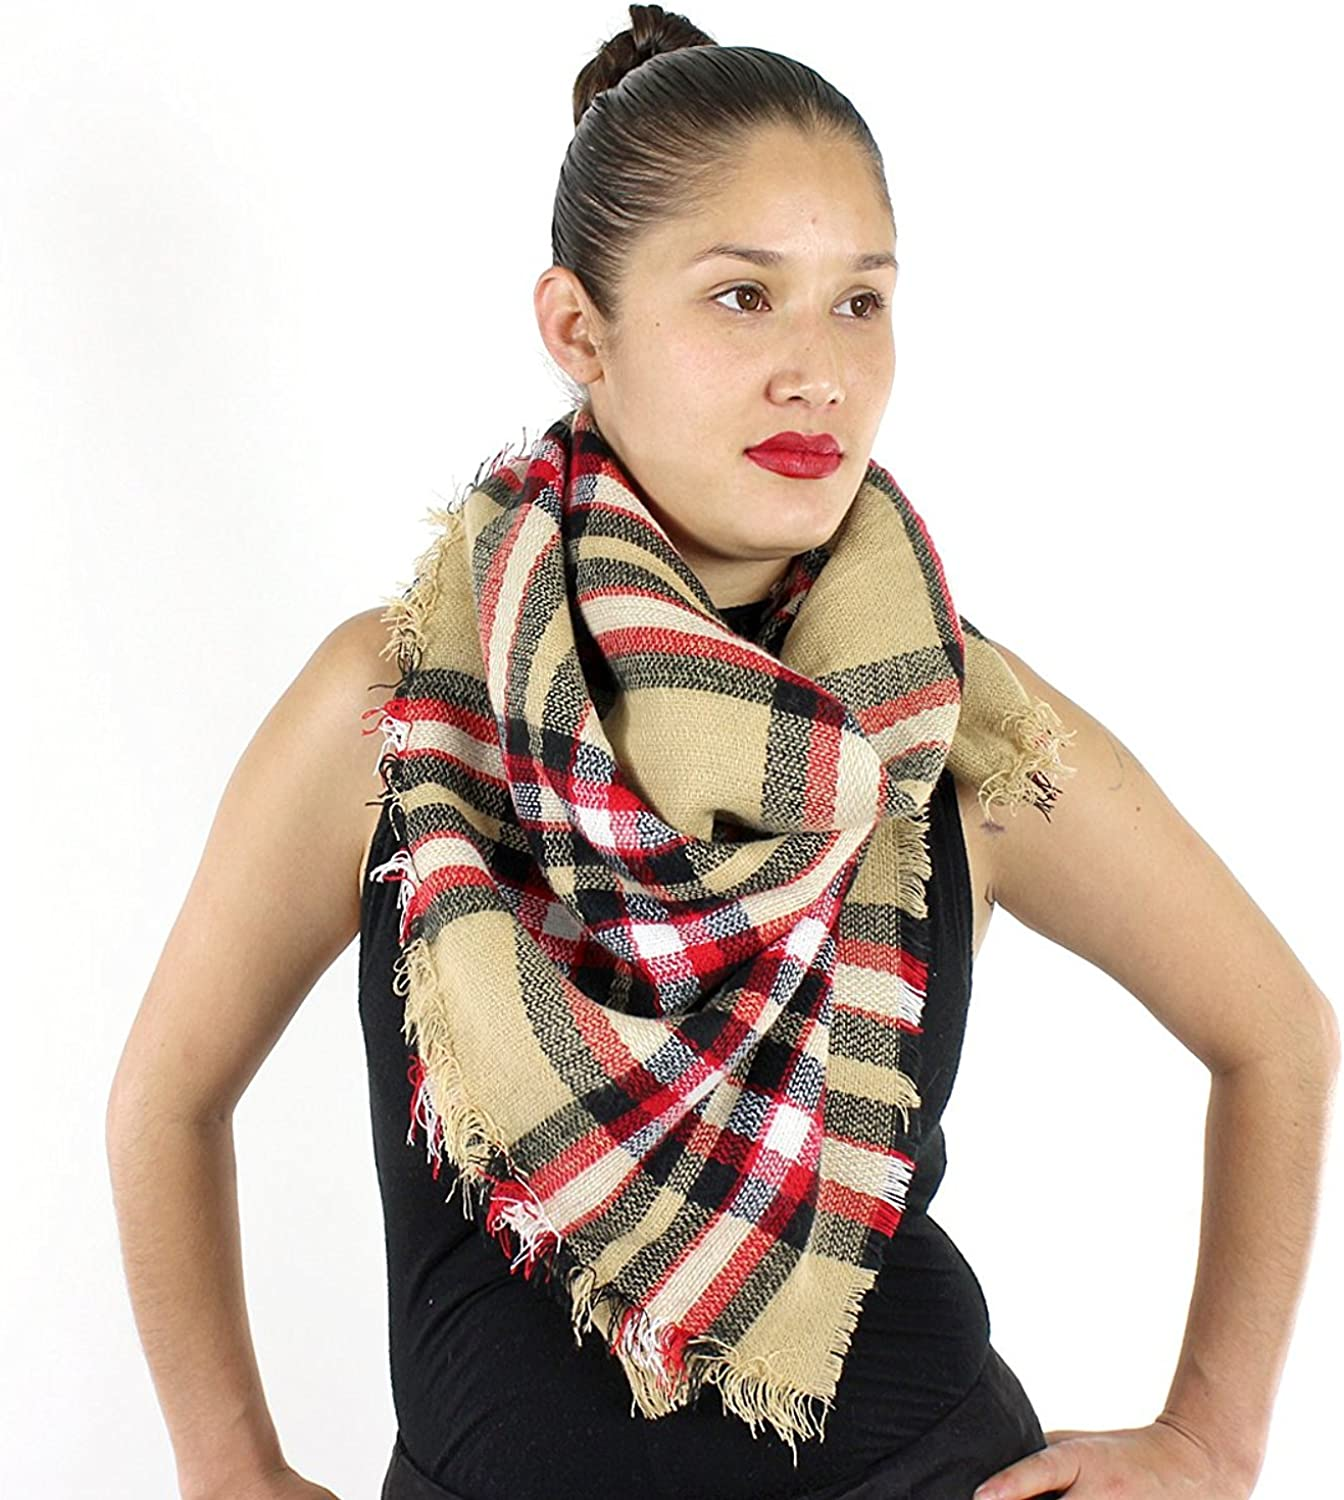 Designer Style Tartan Baltimore Mall Plaid Scarf Blanket Recommended Soft Size Wrap w Large